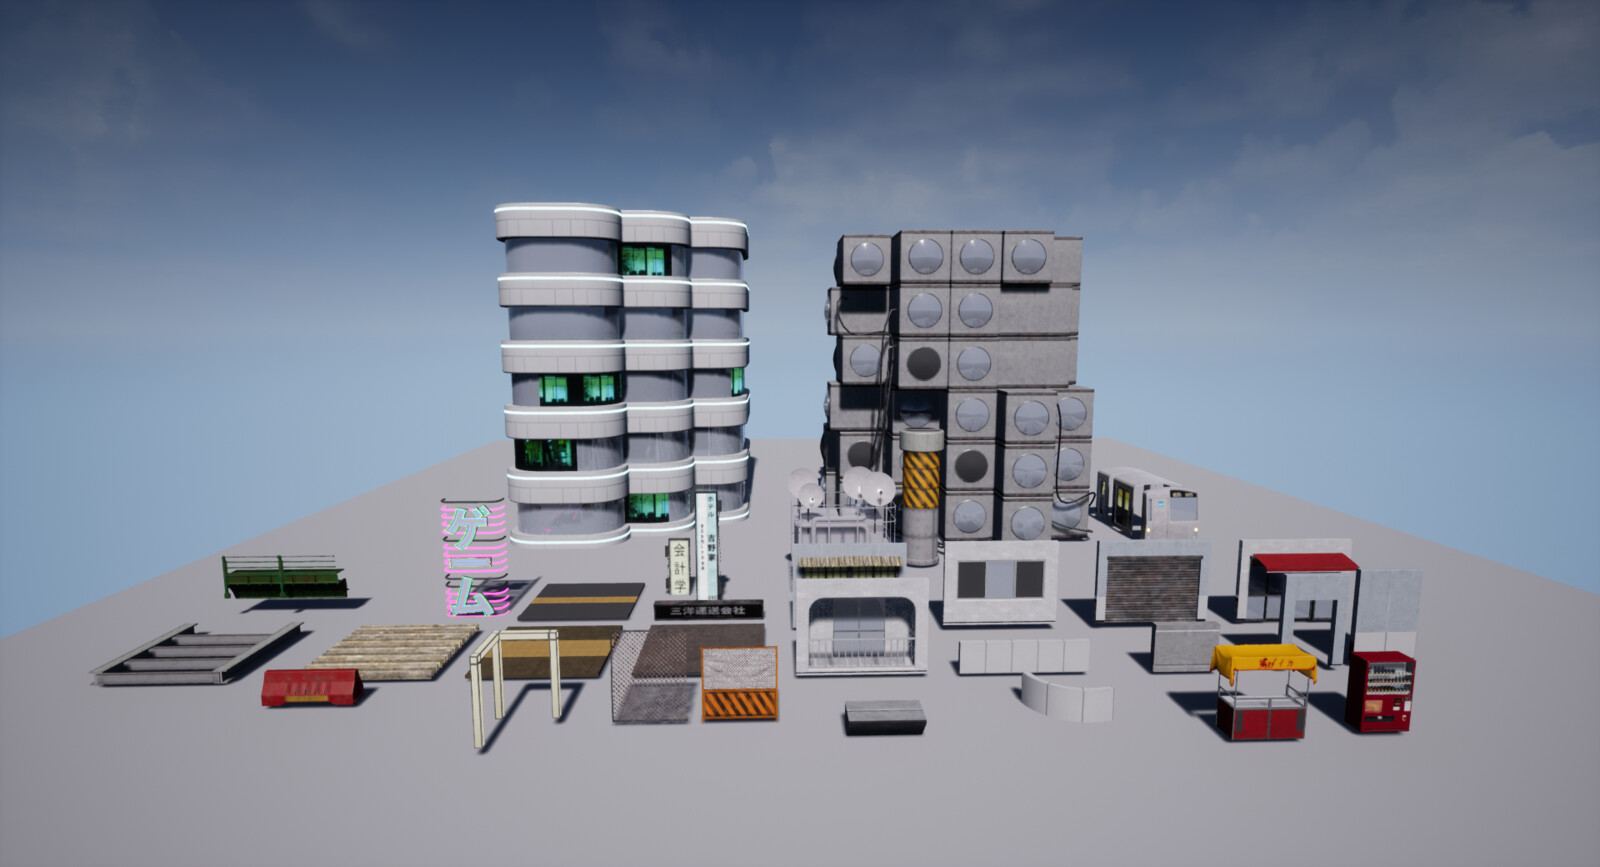 Layout of some of the modular assets (there were 111 of them...)